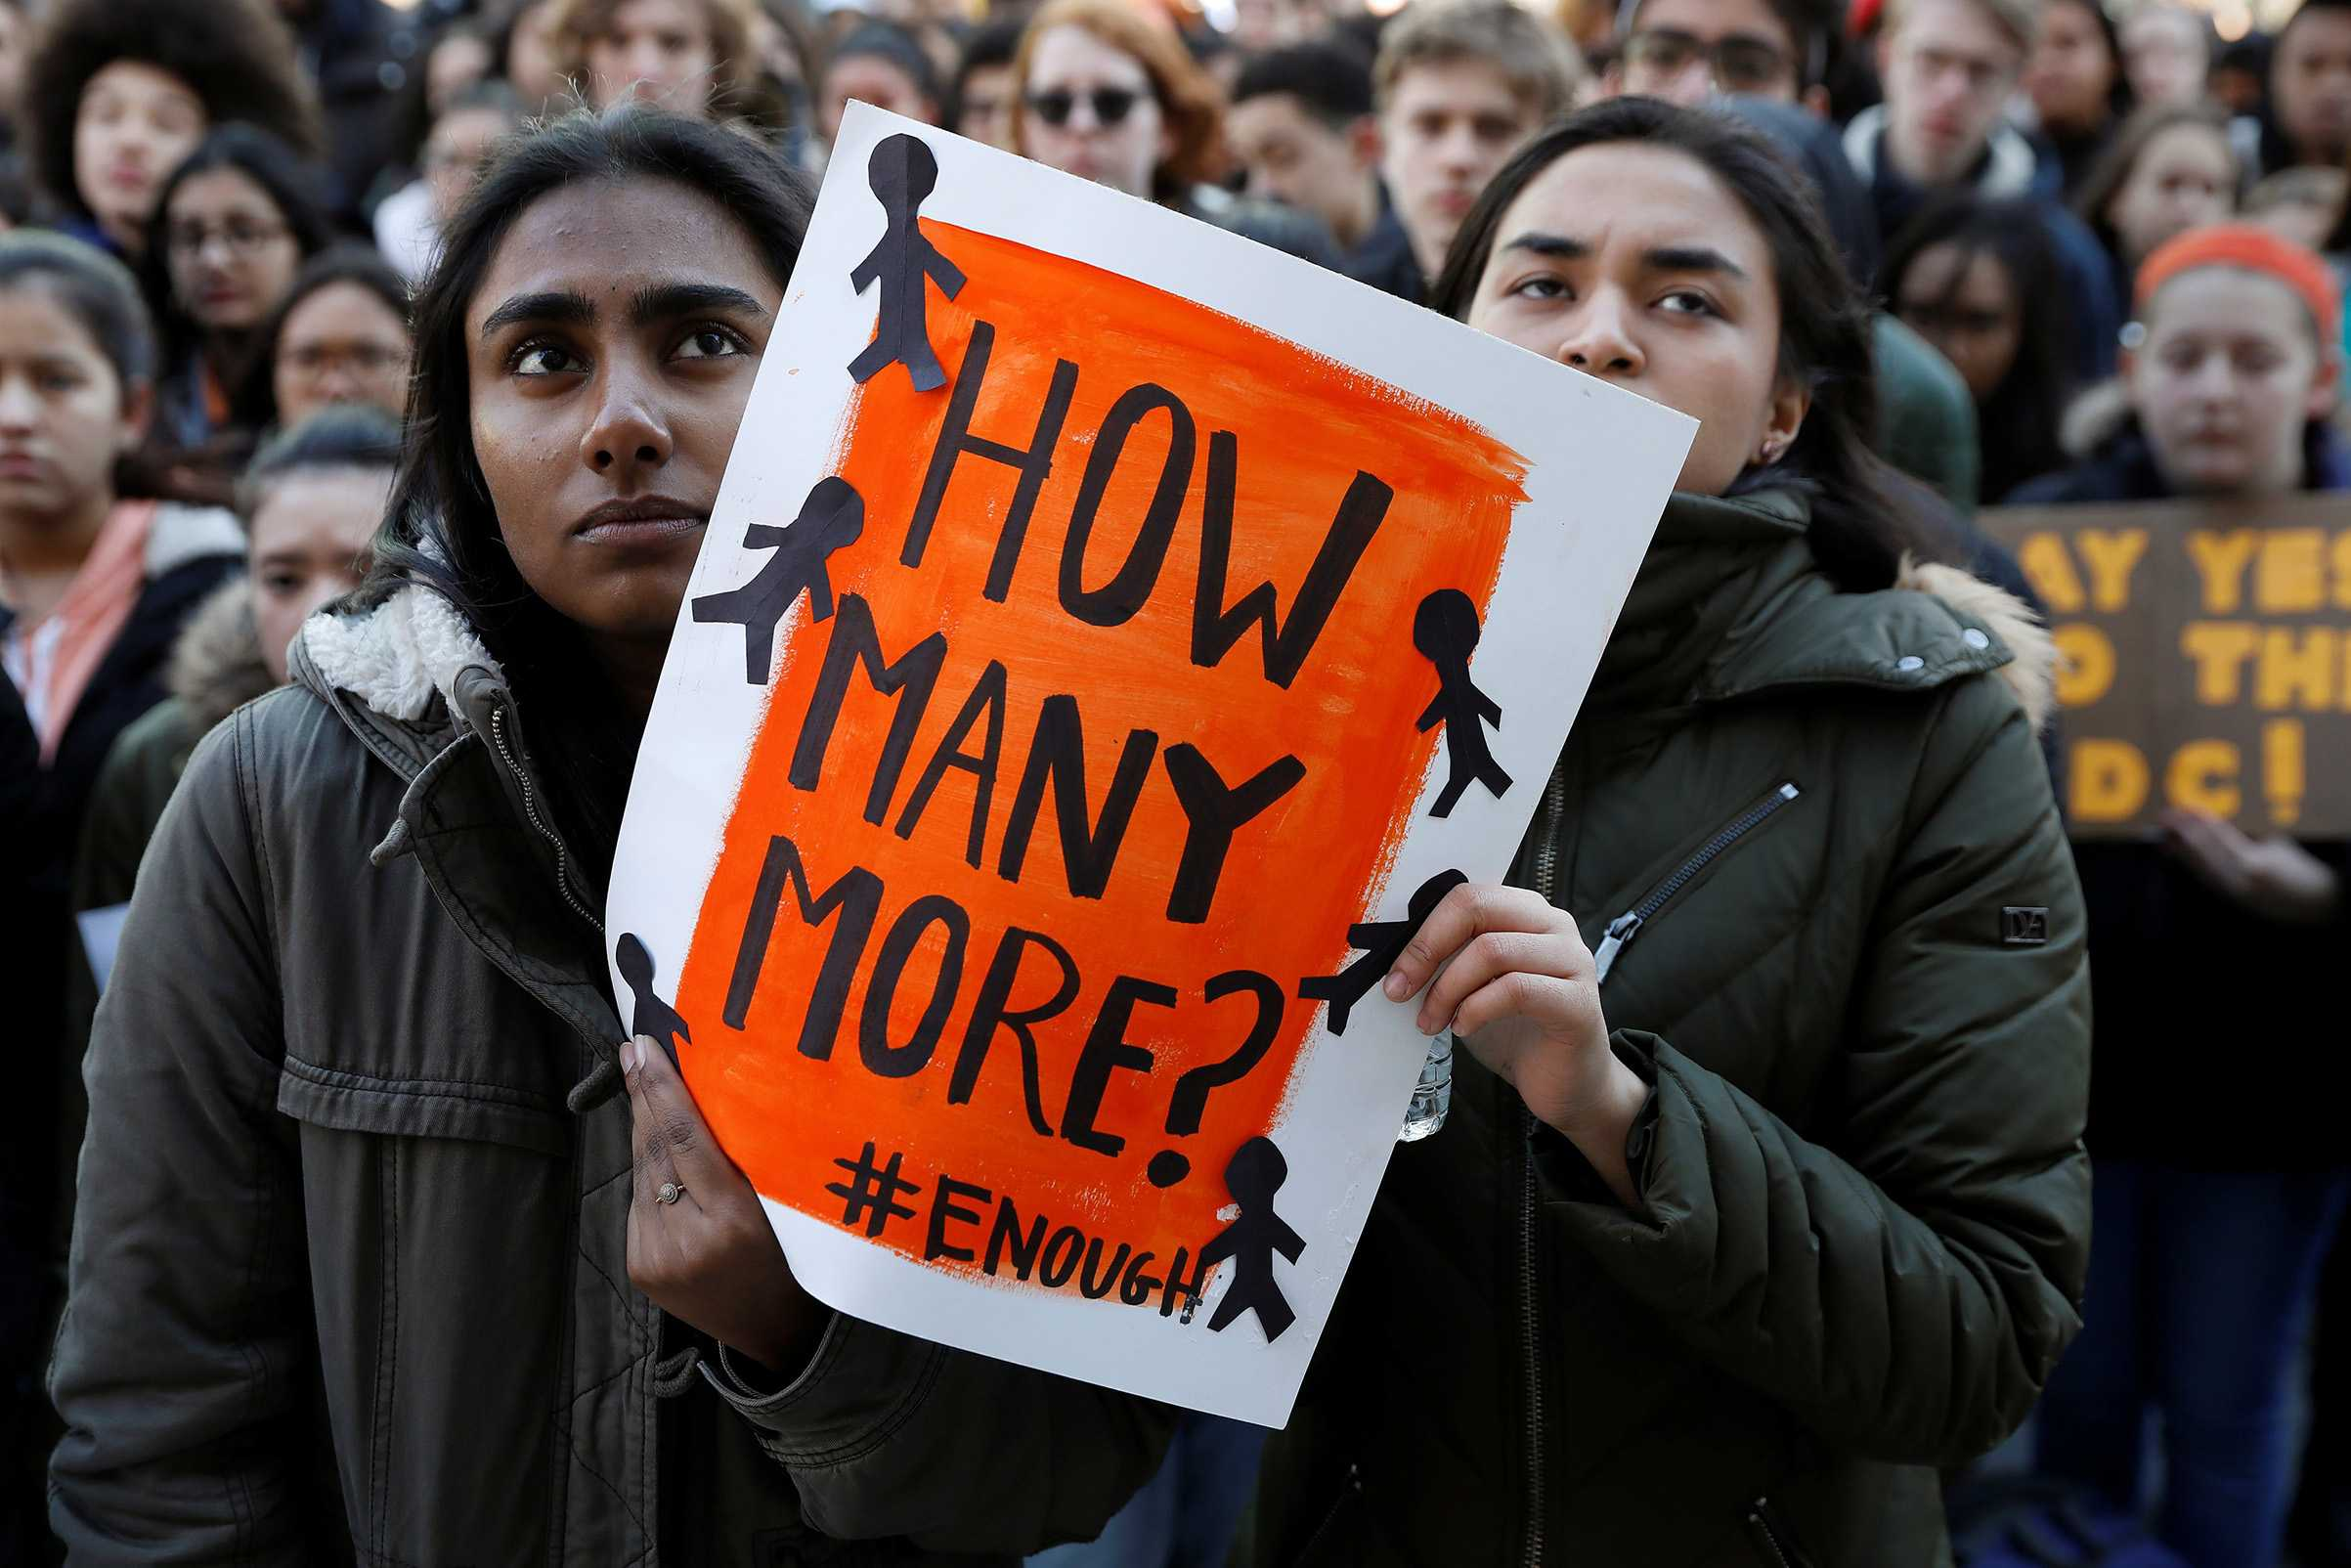 Students participate in a march in support of the National School Walkout in the Queens borough of New York City, New York, U.S., March 14, 2018. REUTERS/Shannon Stapleton